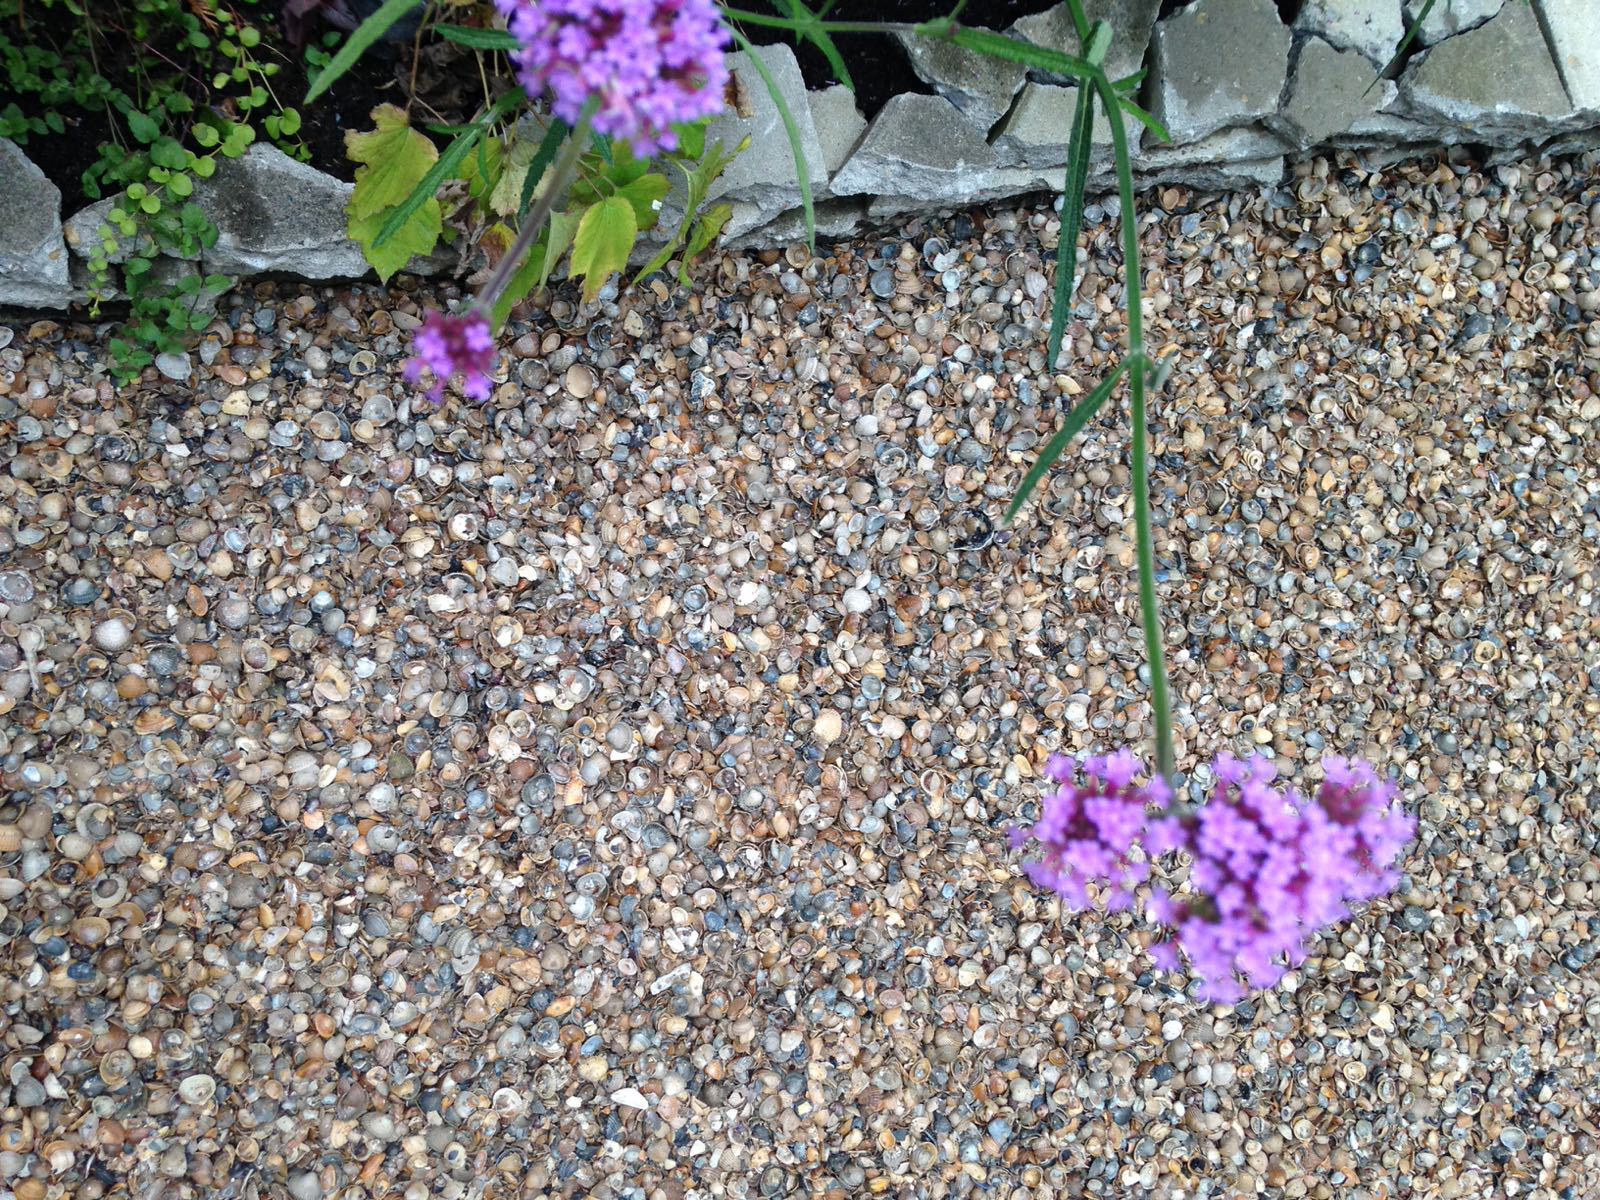 seaside garden in the suburbs - shells in the garden instead of pebbles or stones (7)cr